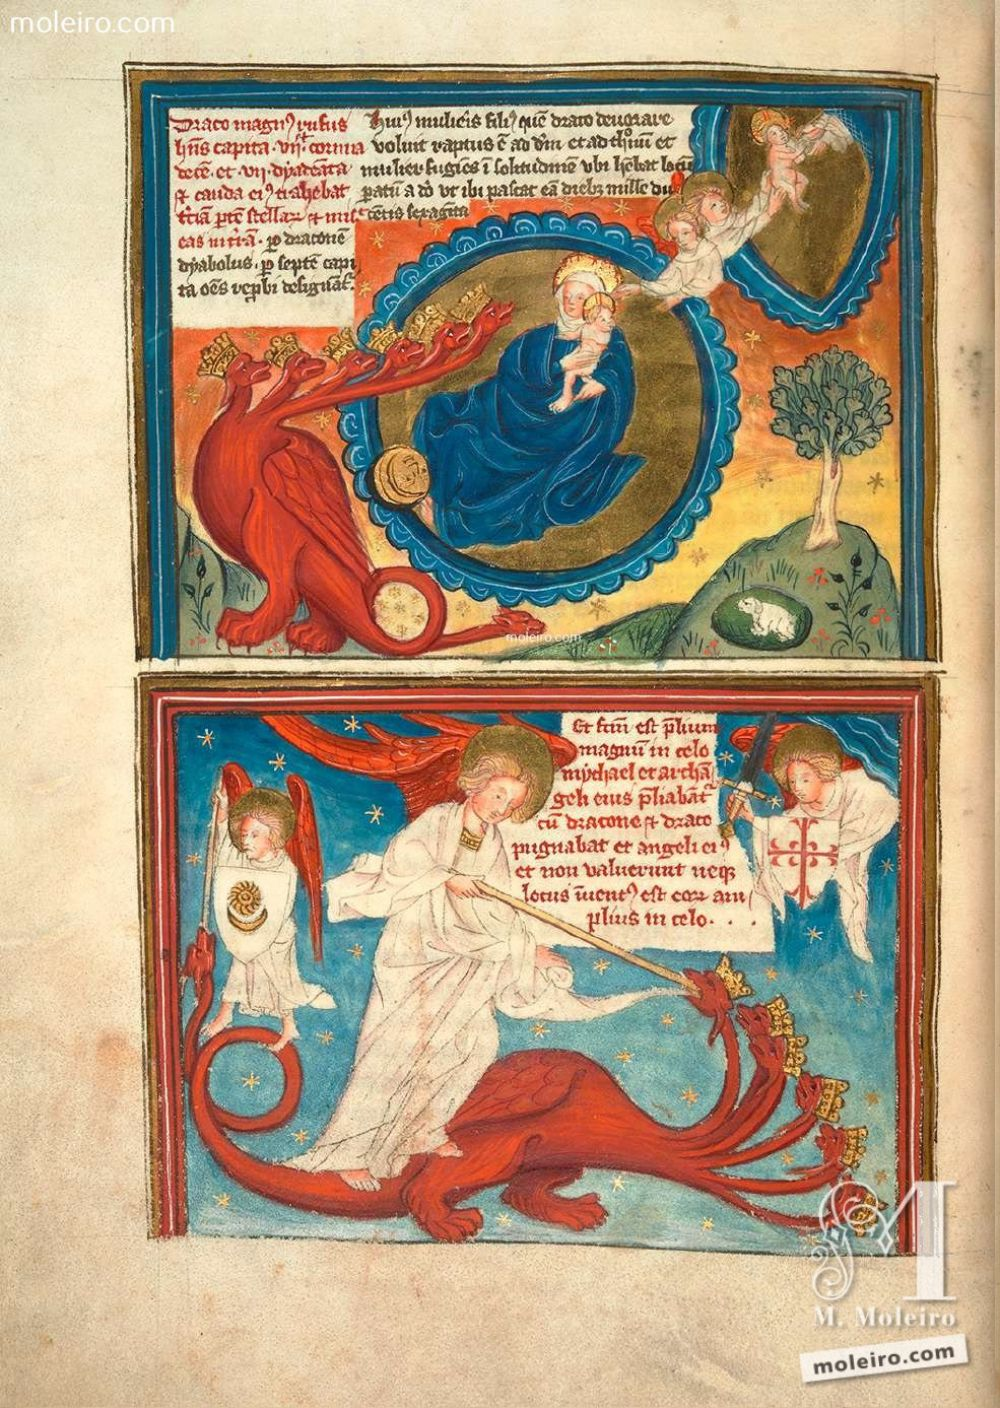 Miniature f. 20v · The Woman and the Dragon.  Picture-book of the Life of St John andtheApocalypse,Add. Ms. 38121.The British Library, London. Illuminated manuscript from the XVth century.